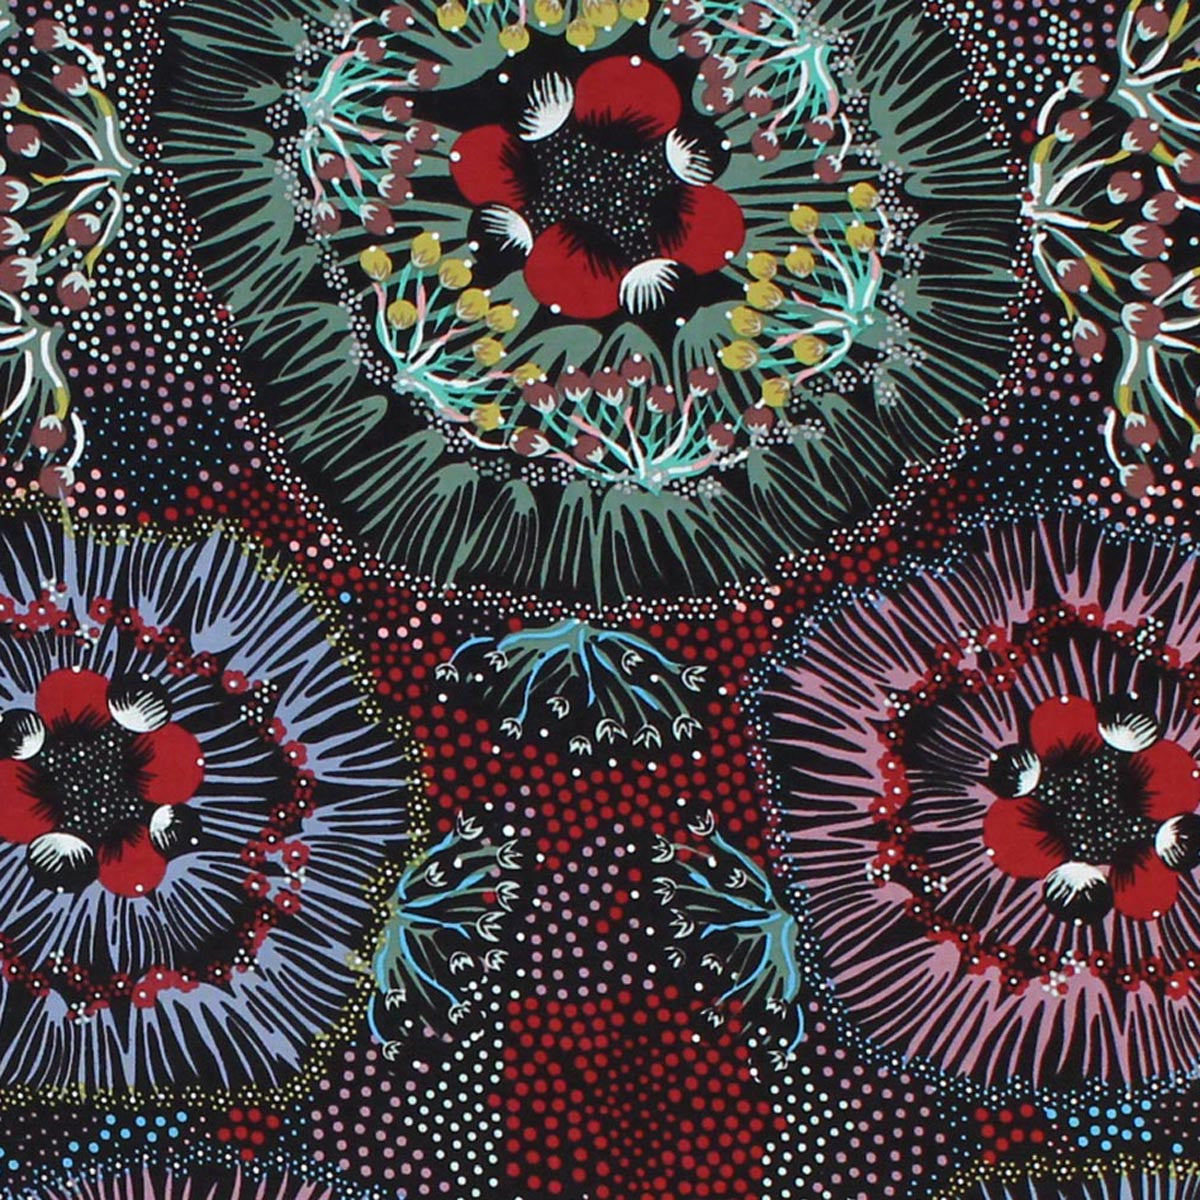 BUSH PLUM BLACK by Australian Aboriginal Artist Polly Naparulla Wheeler